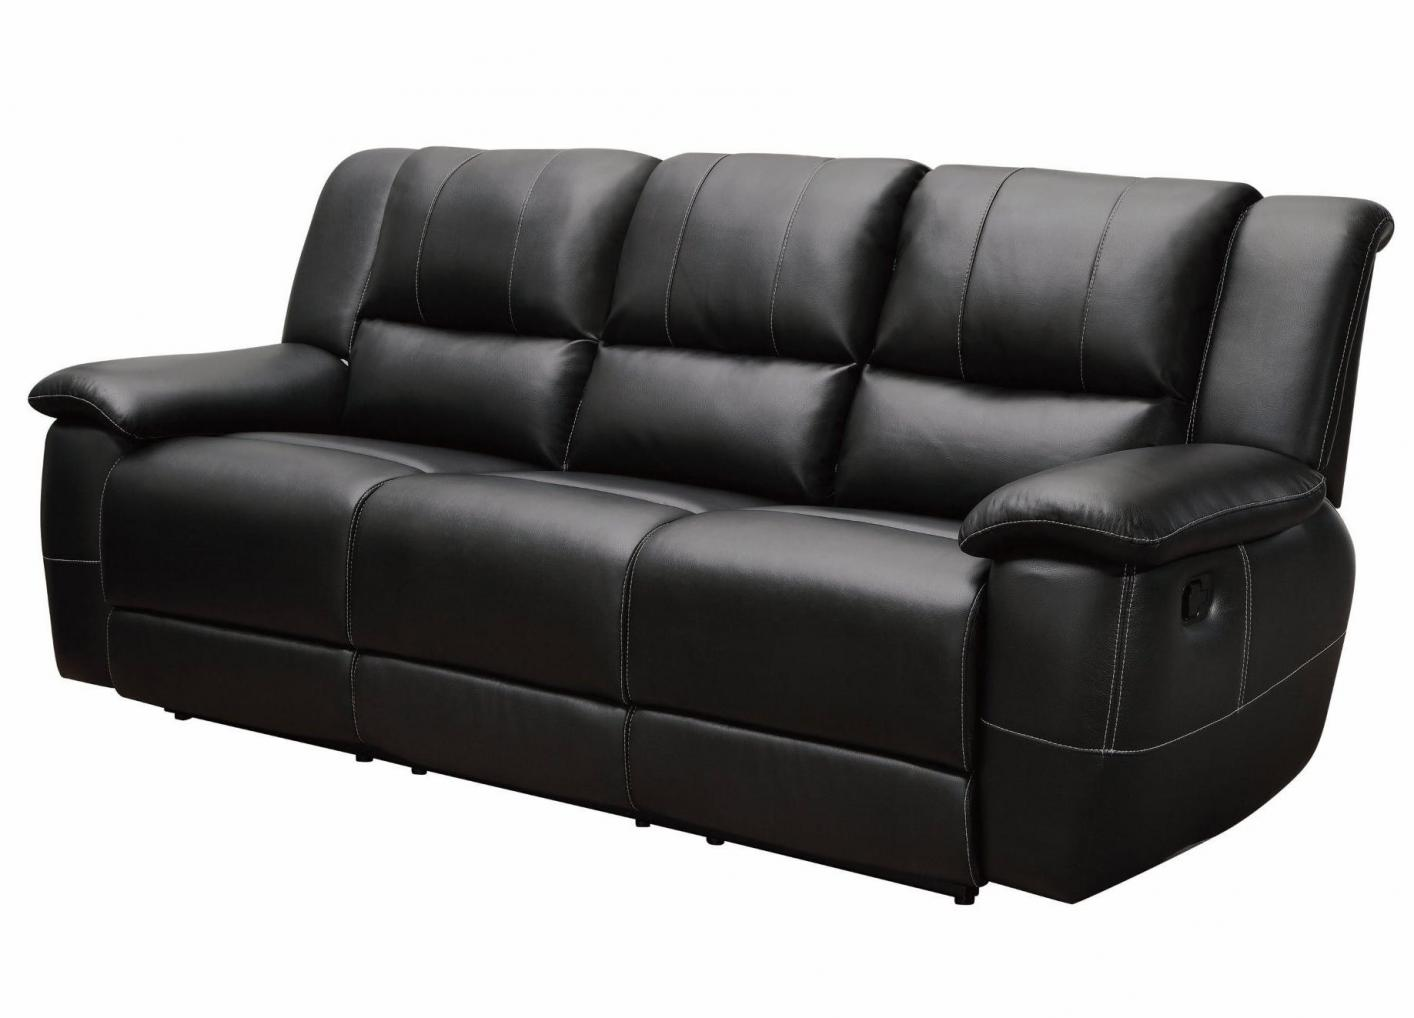 Reclining Sofa Los Angeles Ca Black Leather Reclining Sofa - Steal-a-sofa Furniture